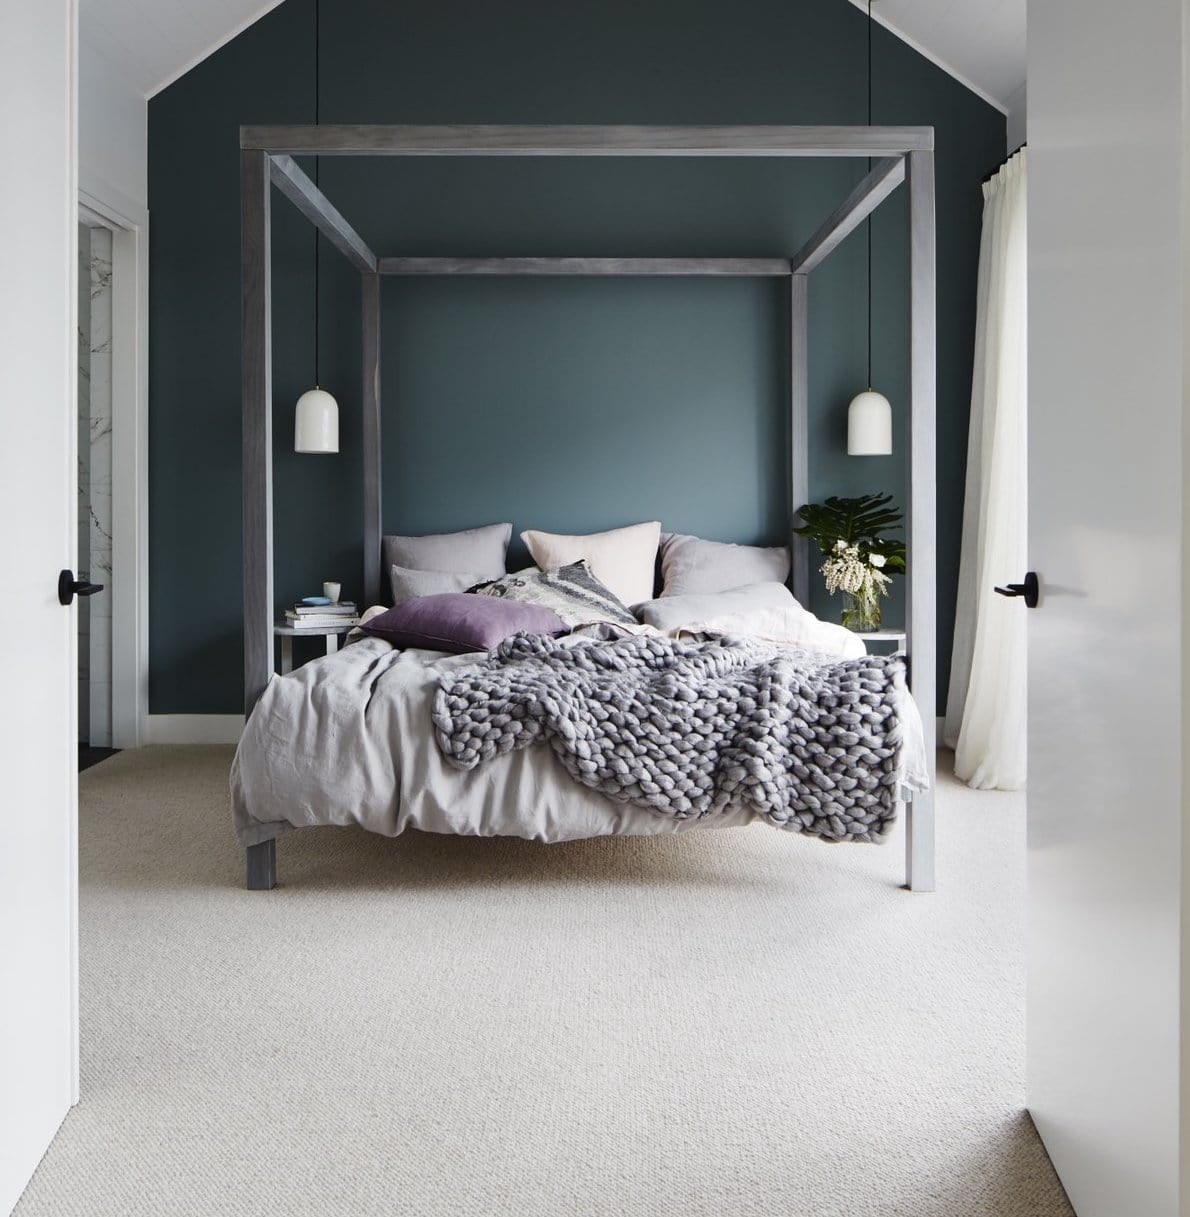 sophia four poster bed from house of orange in deanne jolly master bedroom